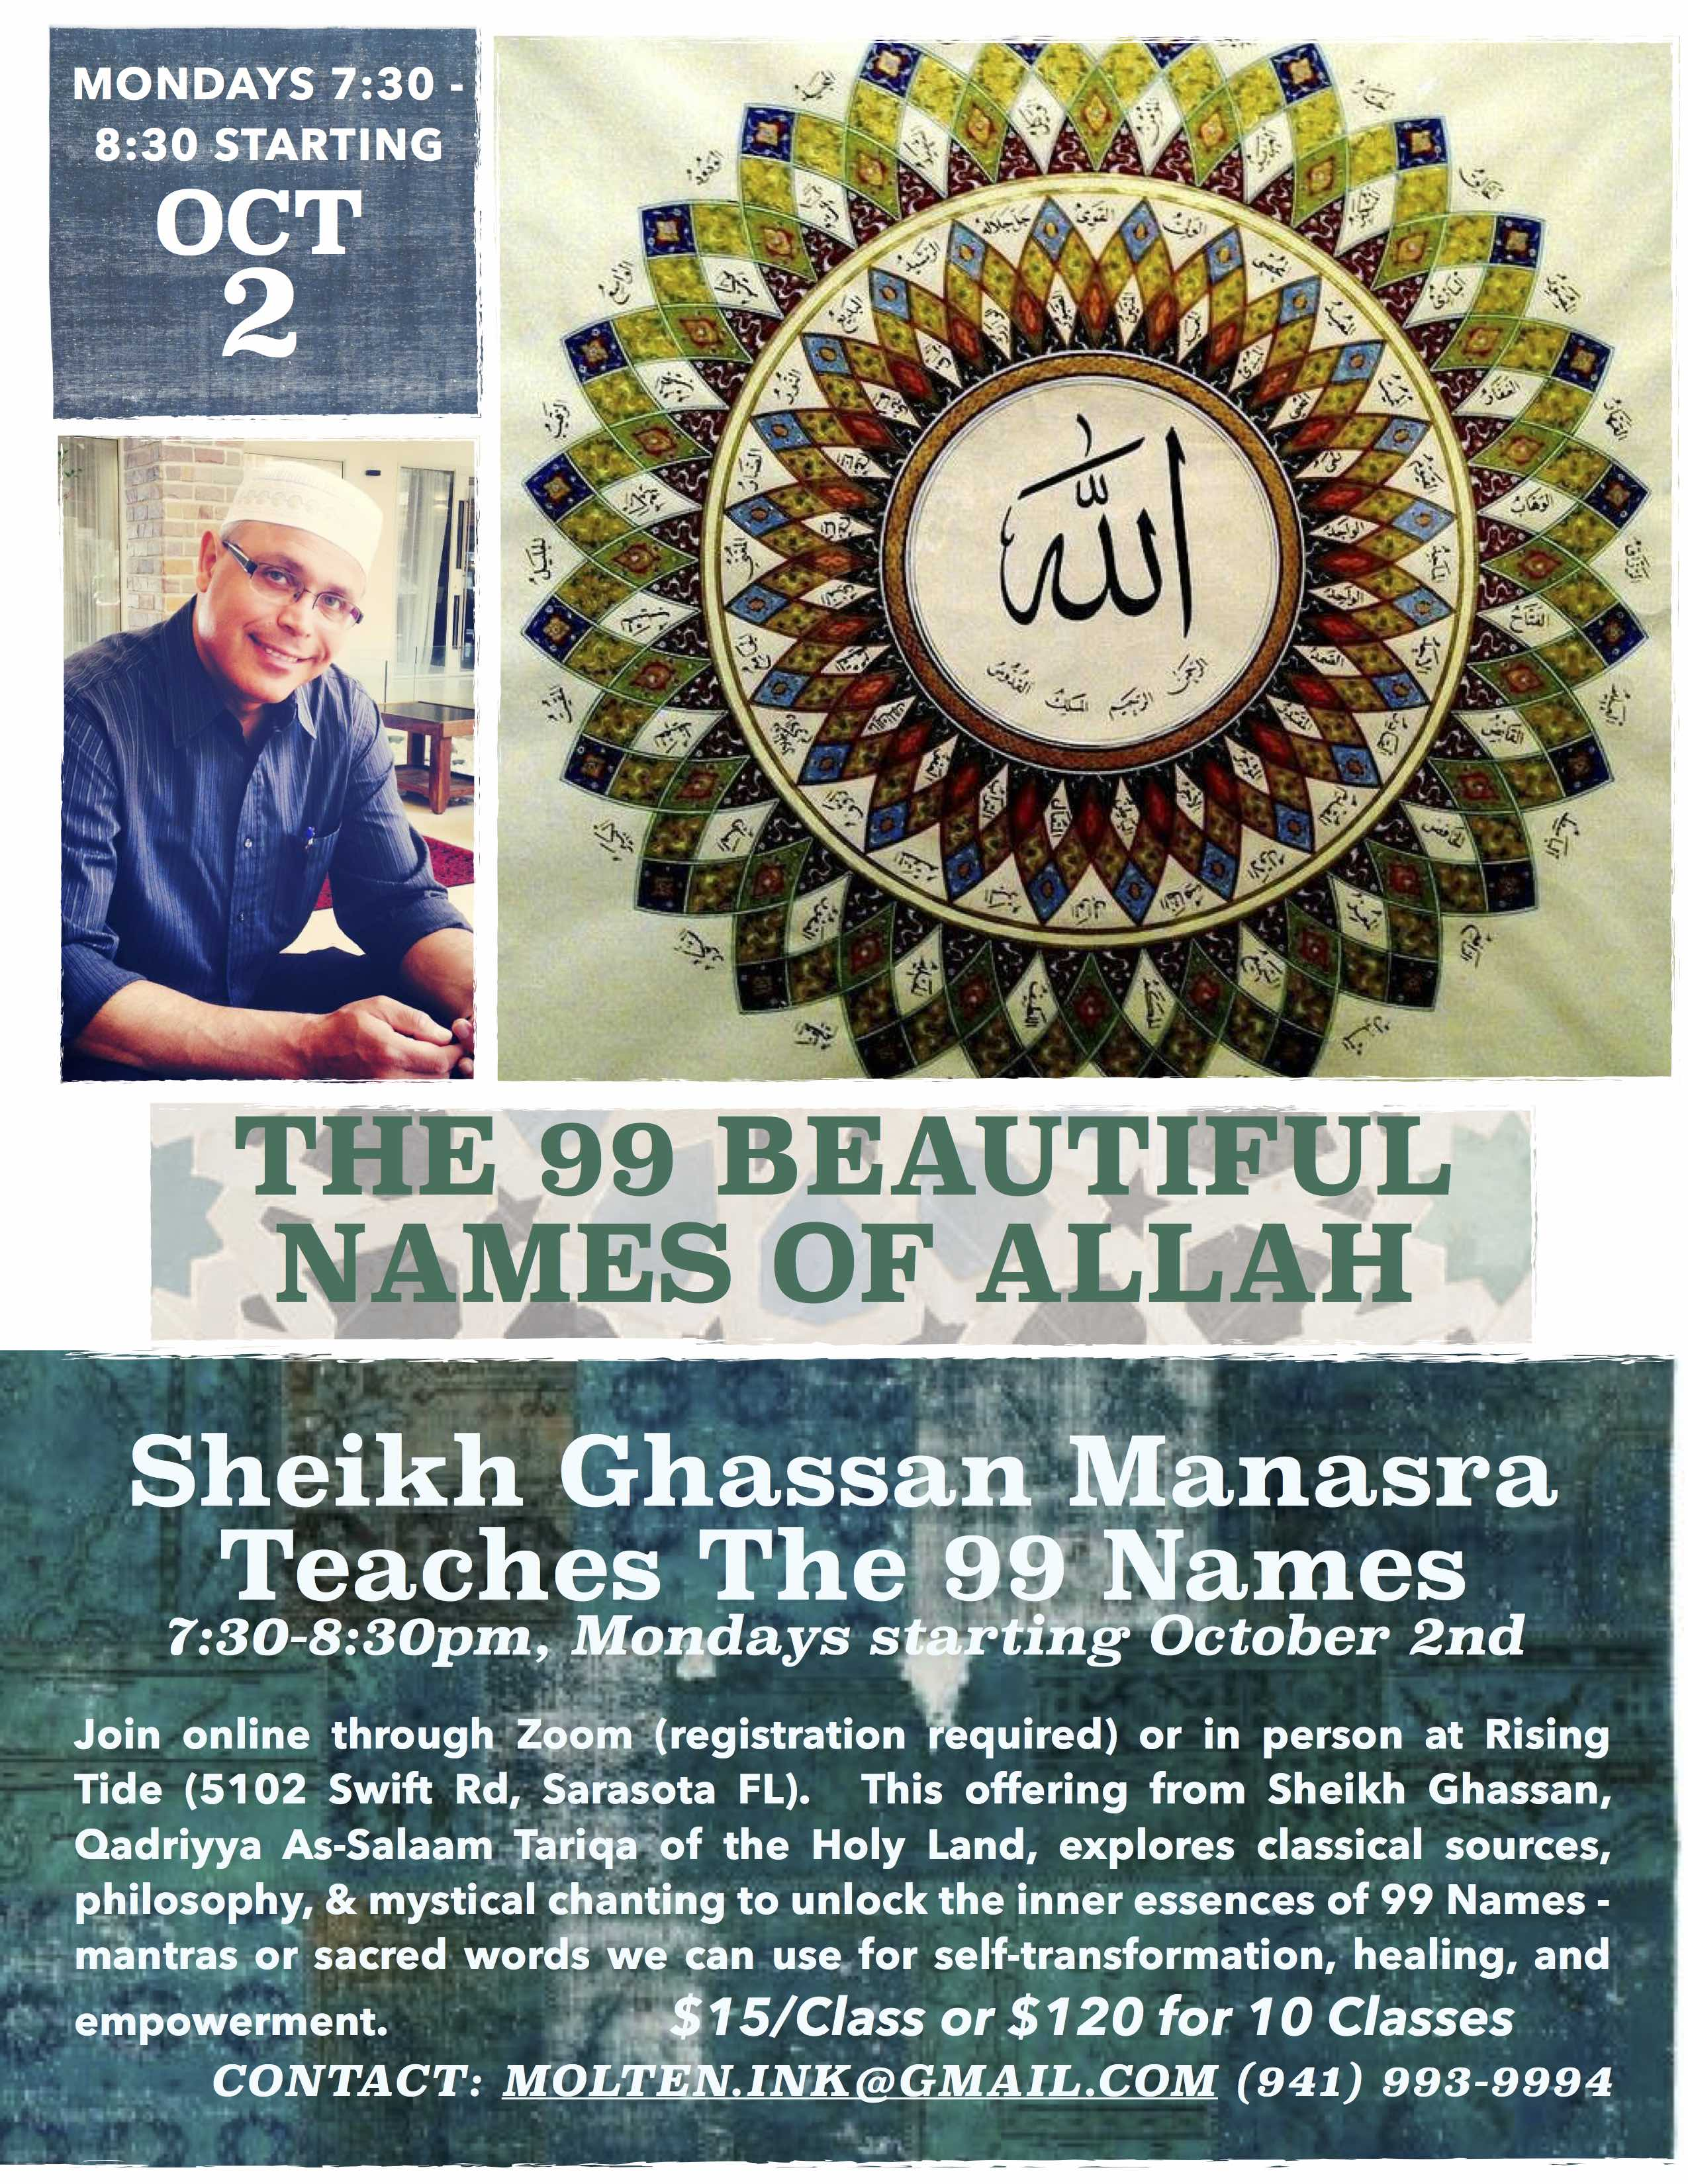 The 99 Names With Sheikh Ghassan Manasra 1 Class Registration 15